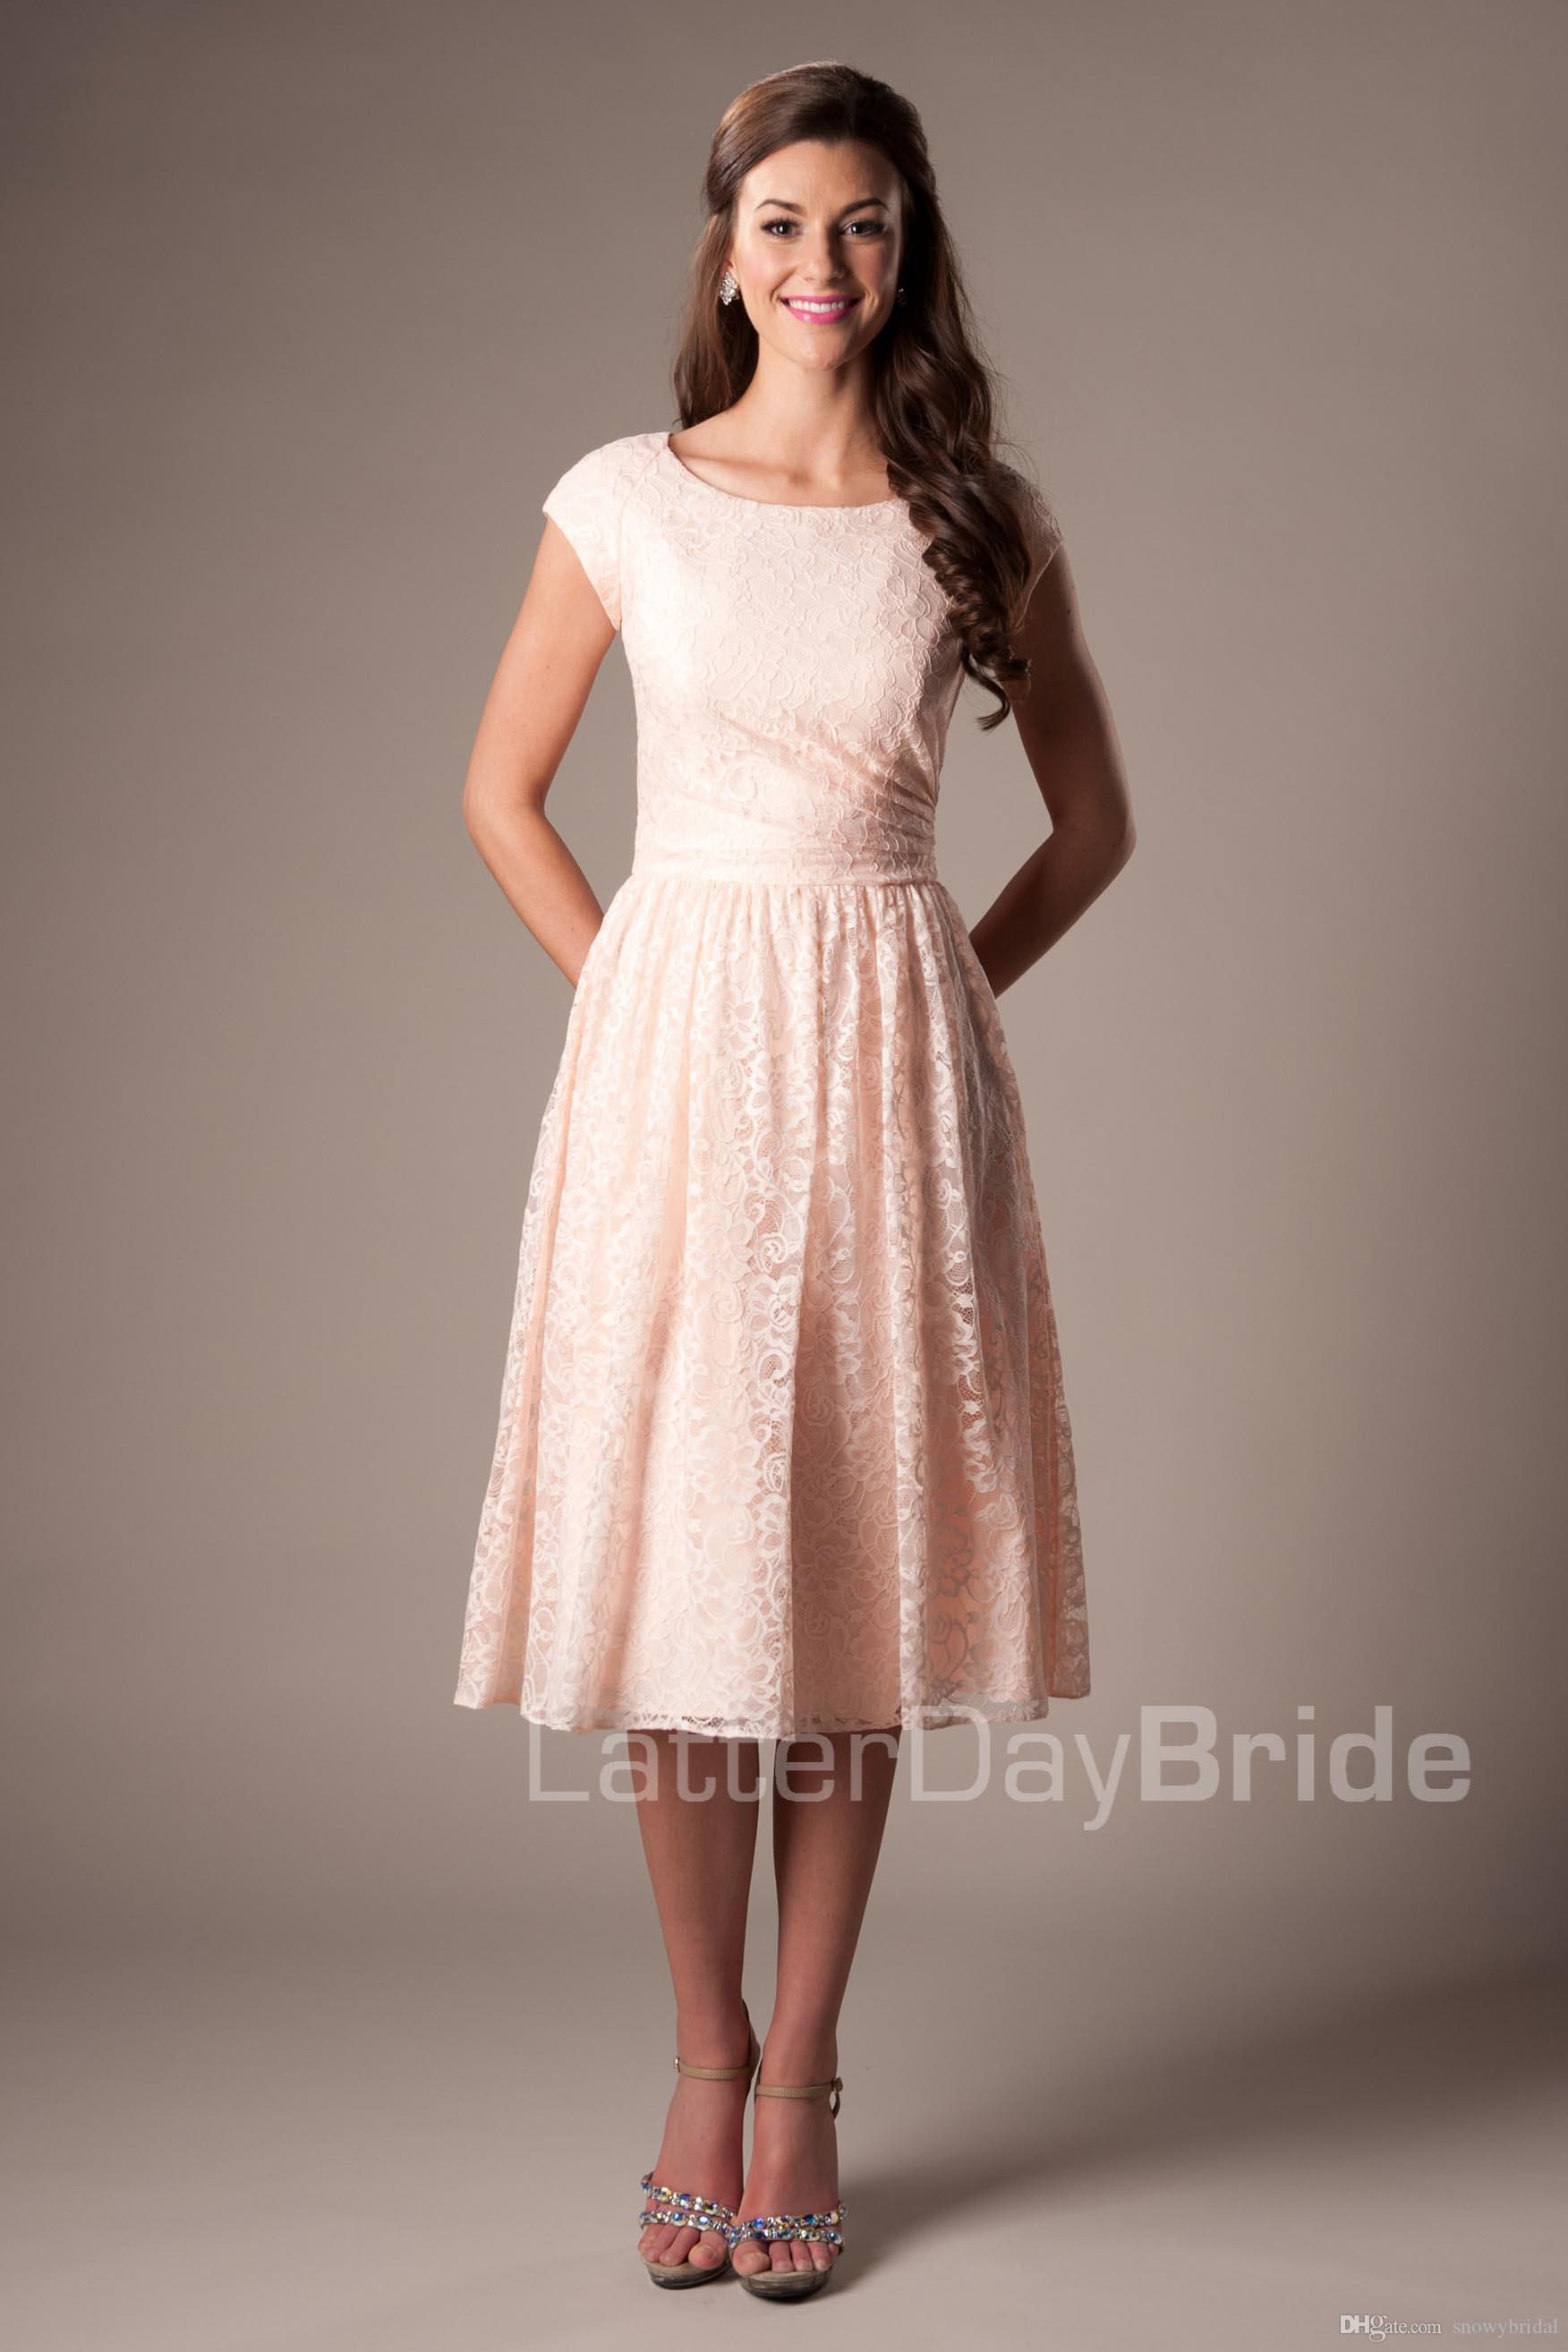 Cheap modest bridesmaid dresses with sleeves choice image coral full lace short modest bridesmaid dresses short sleeves a coral full lace short modest bridesmaid ombrellifo Image collections